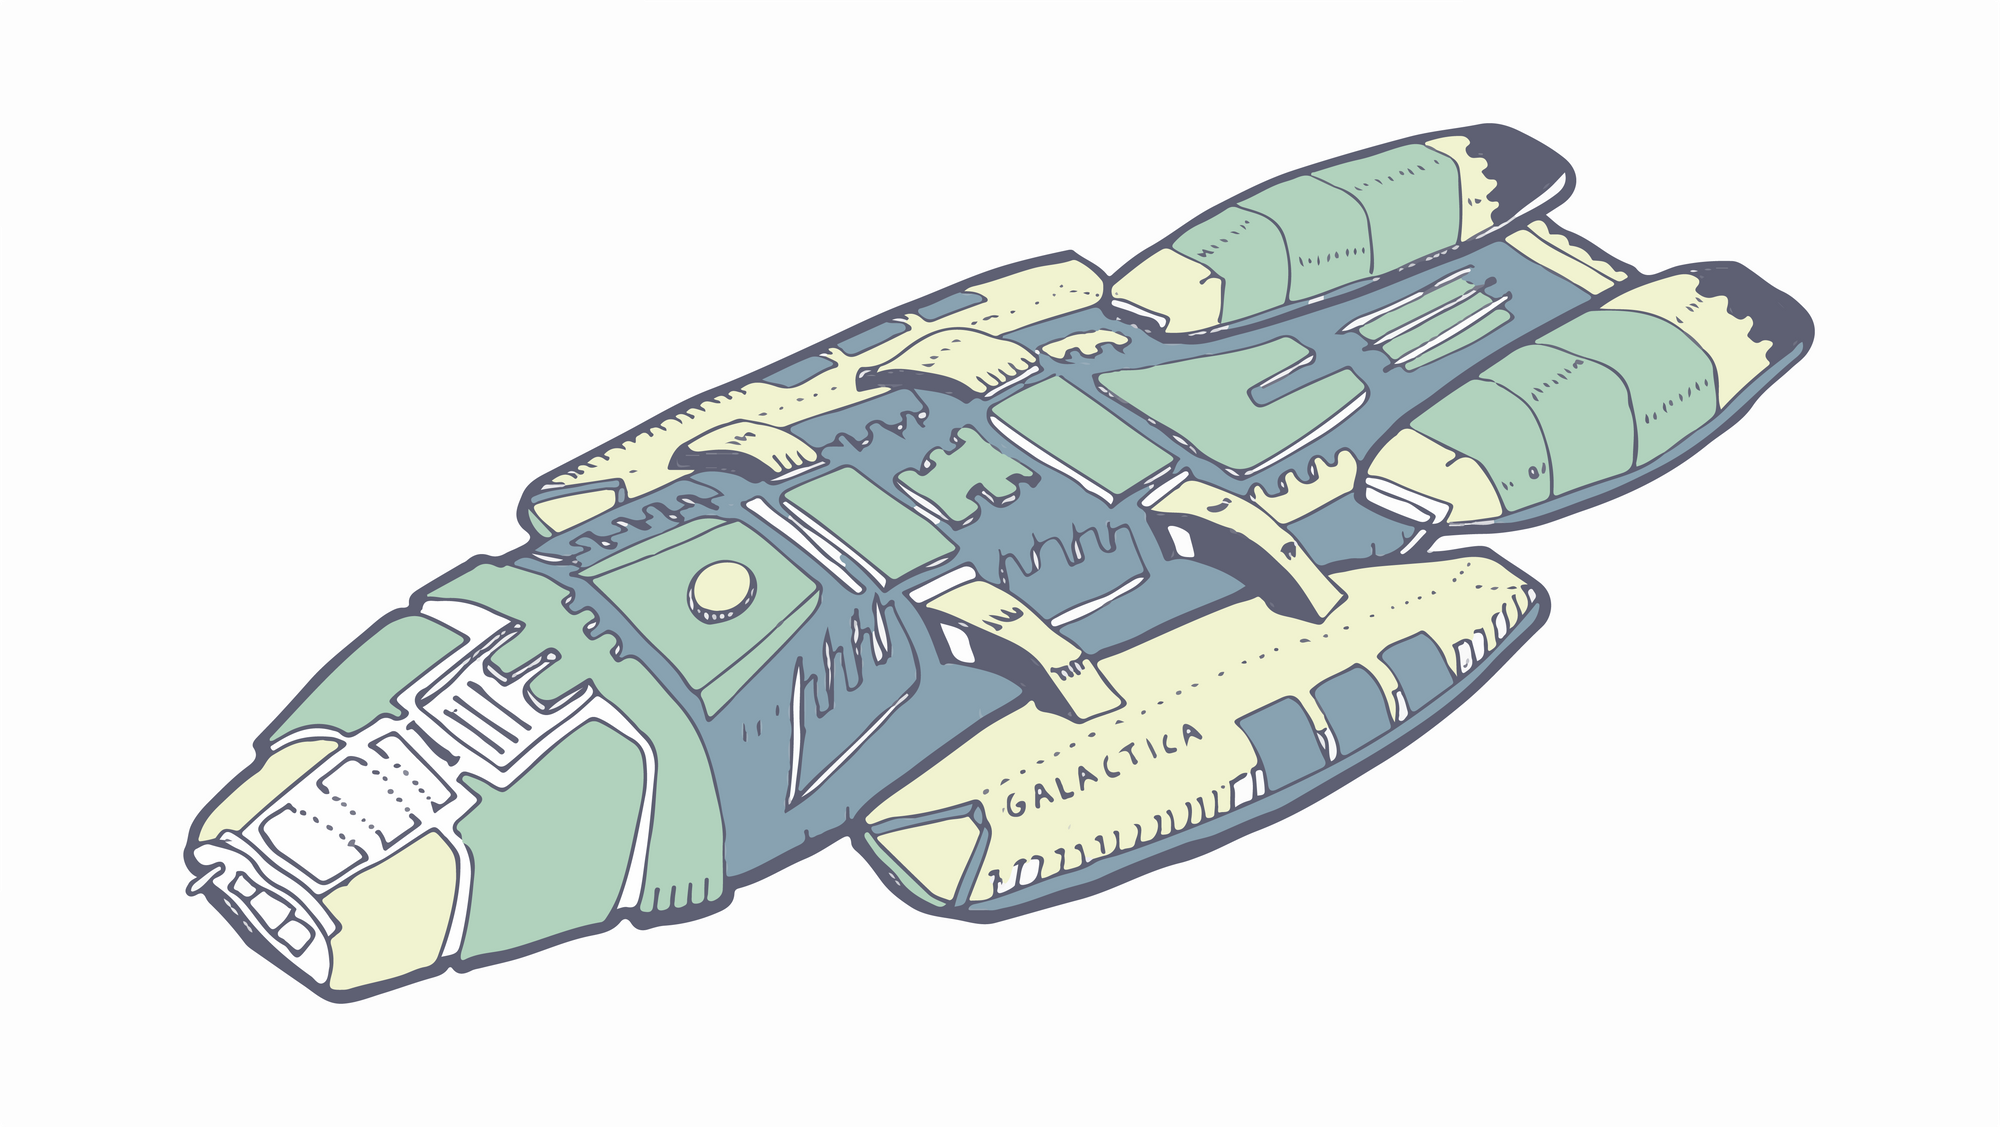 drawing of the Battlestar Galactica ship